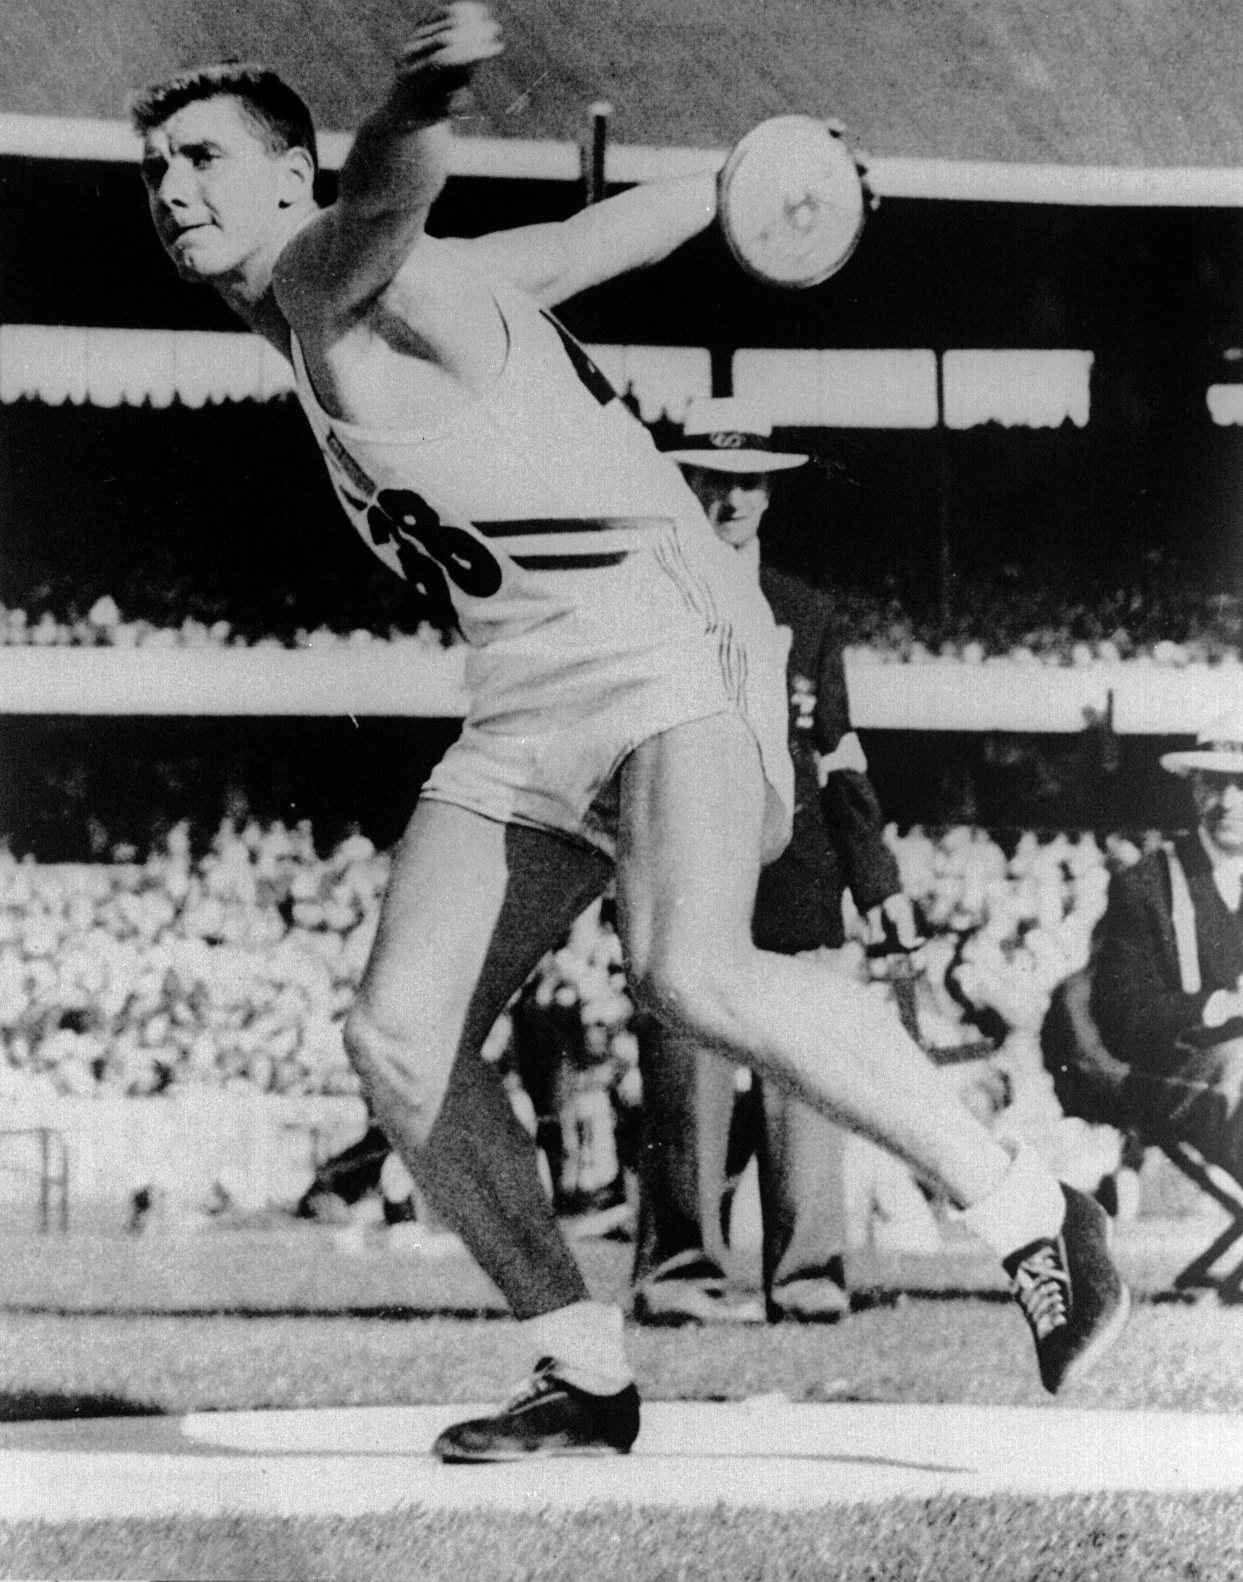 Al Oerter in action at the 1956 Olympics, where he won the first of four consecutive Olympic gold medals.